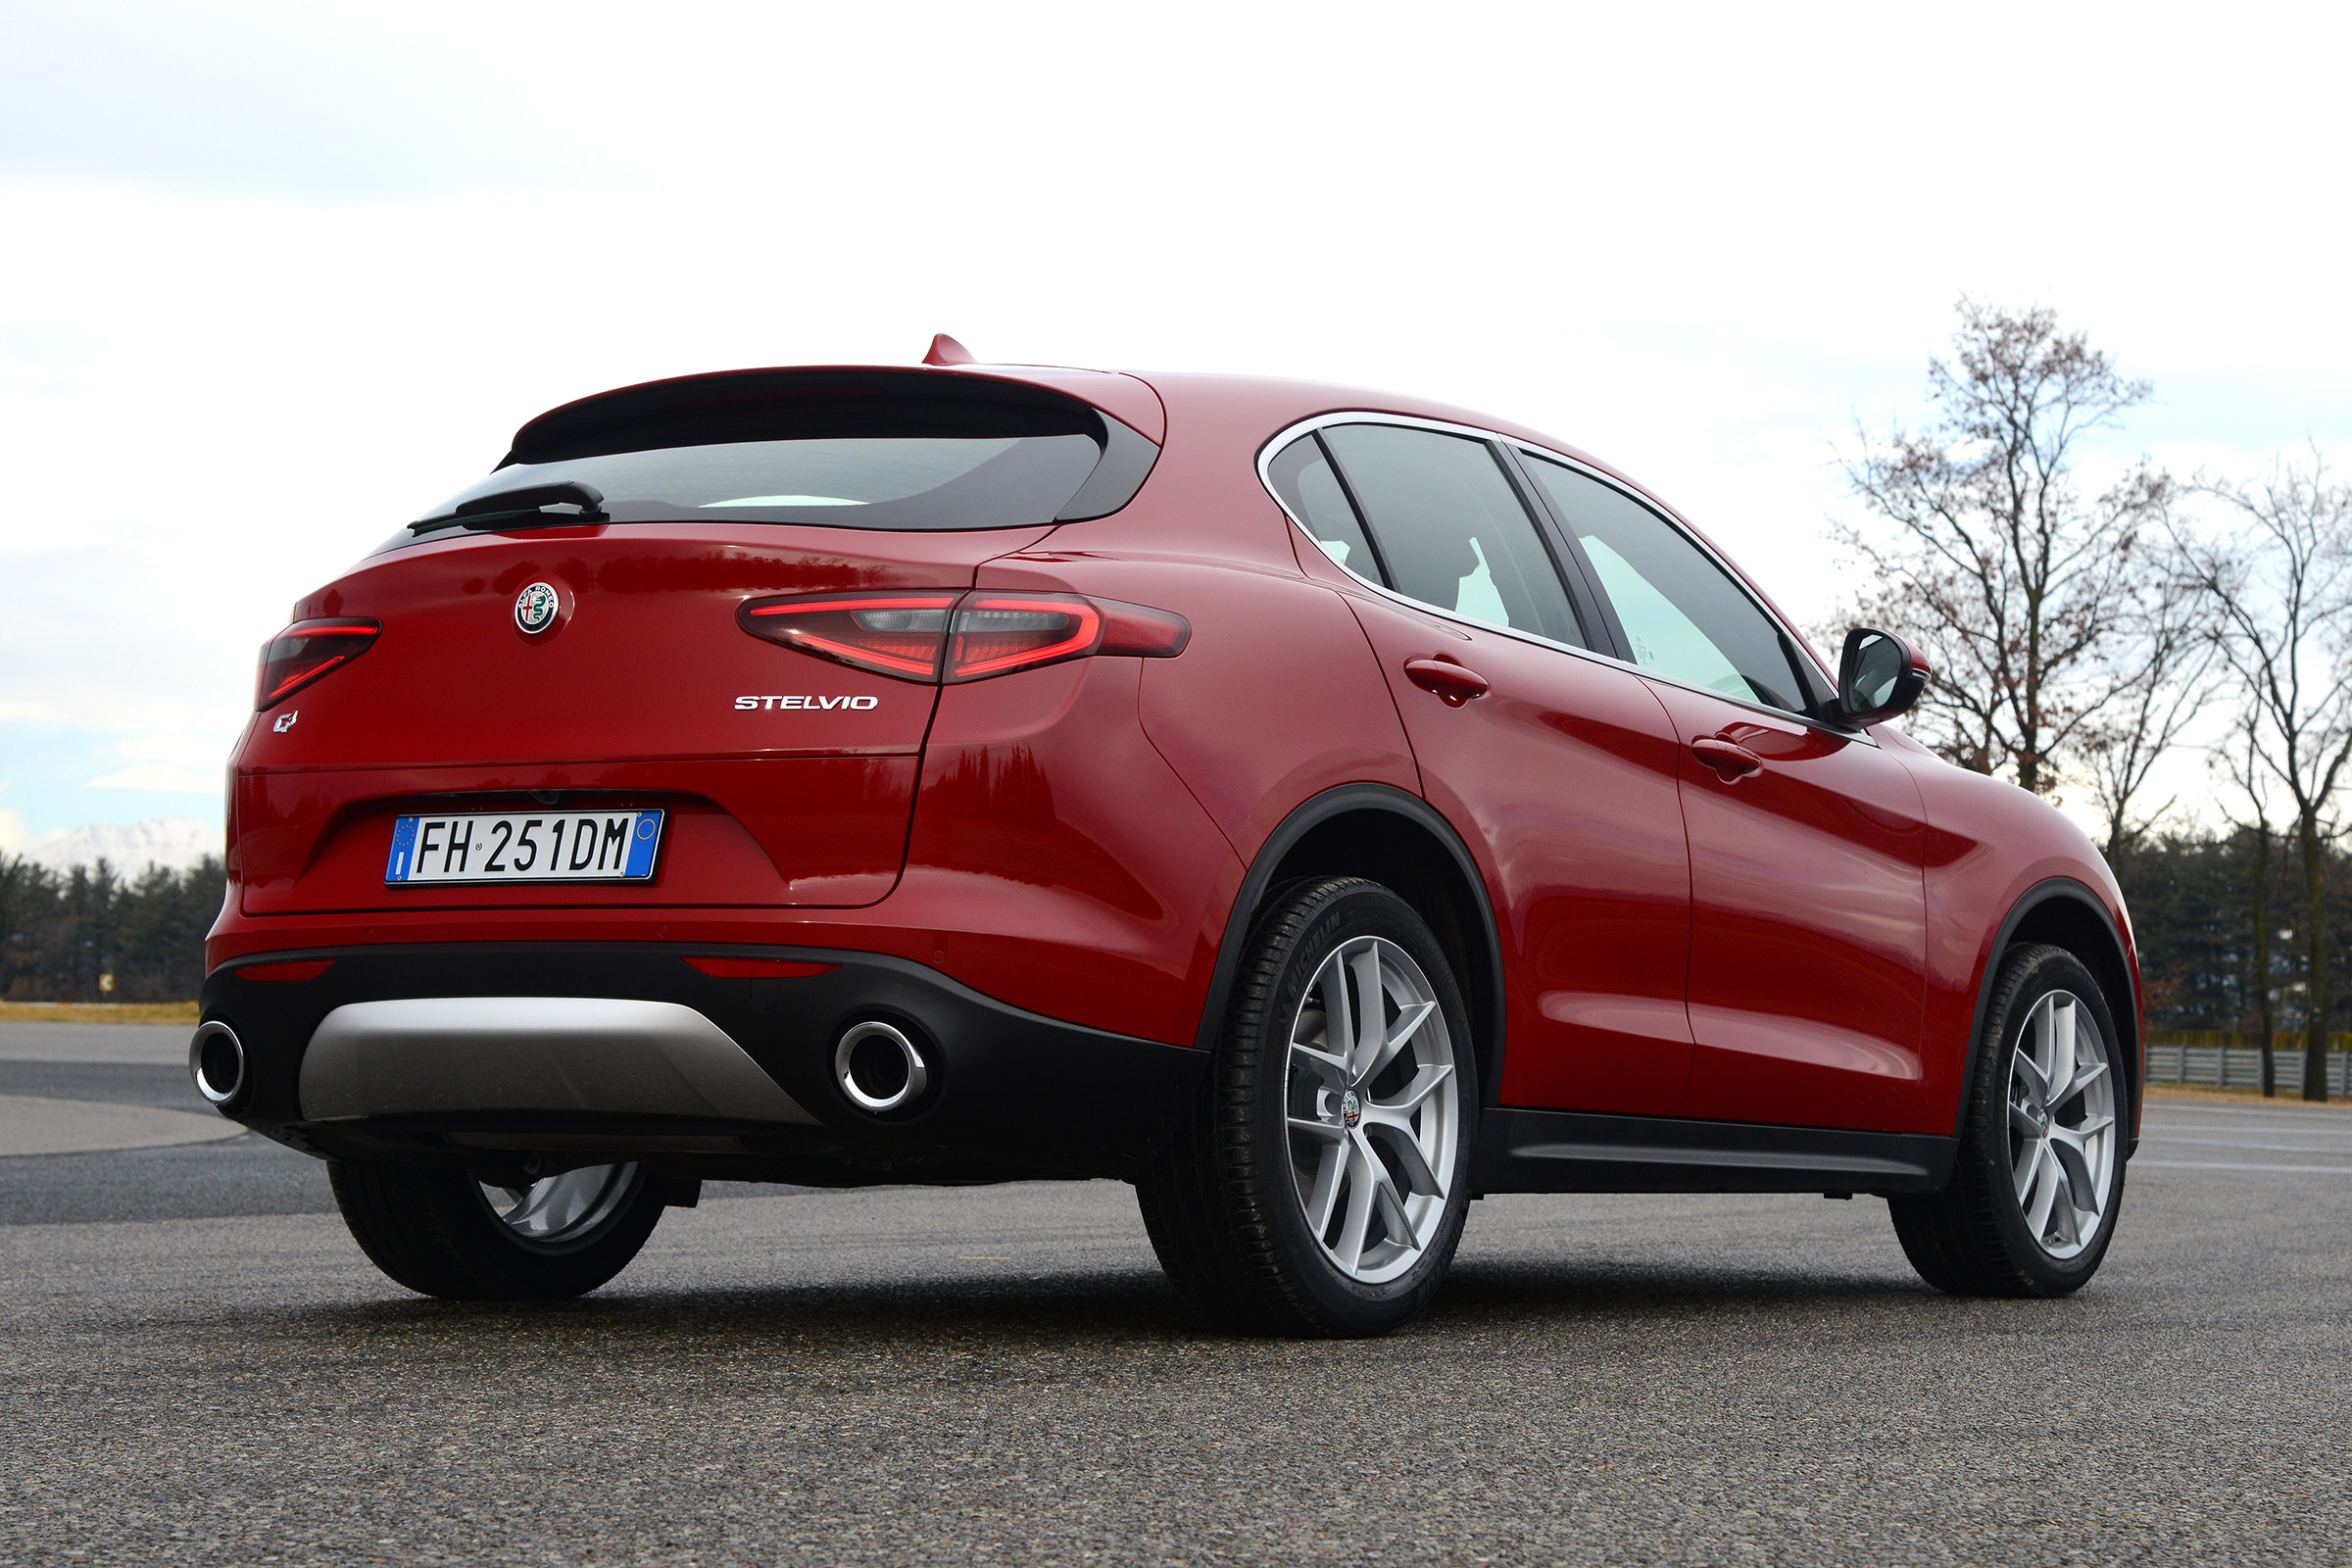 2017 Alfa Romeo Stelvio Exterior Rear And Side (Photo 3 of 23)